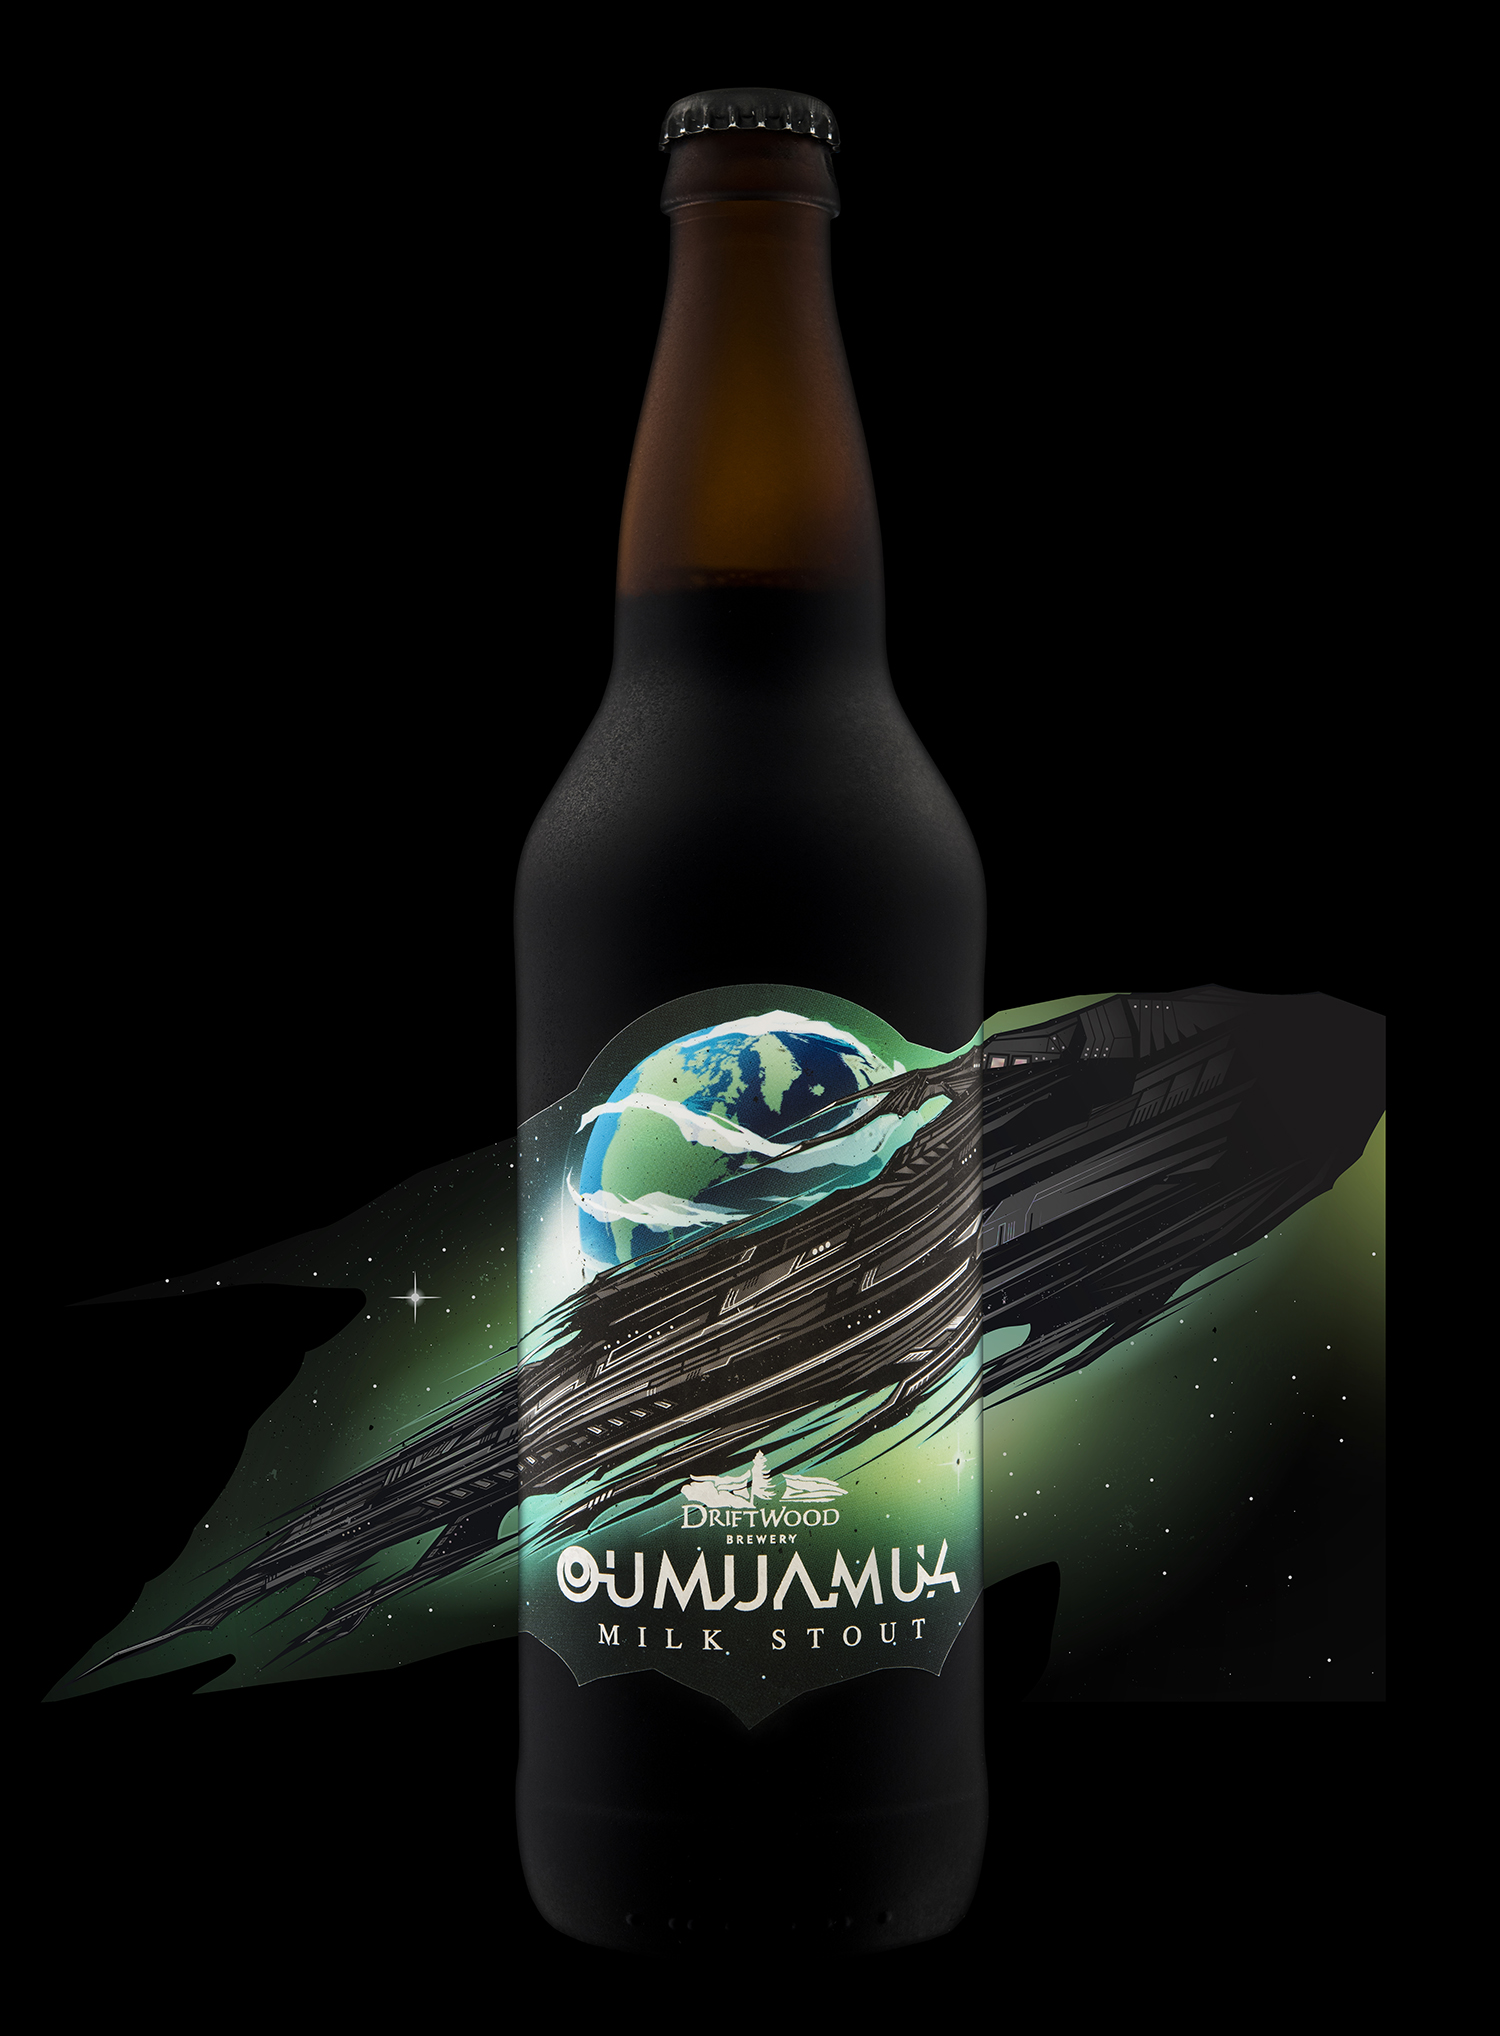 Packaging Design for Driftwood Brewery's Oumuamua Milk Stout